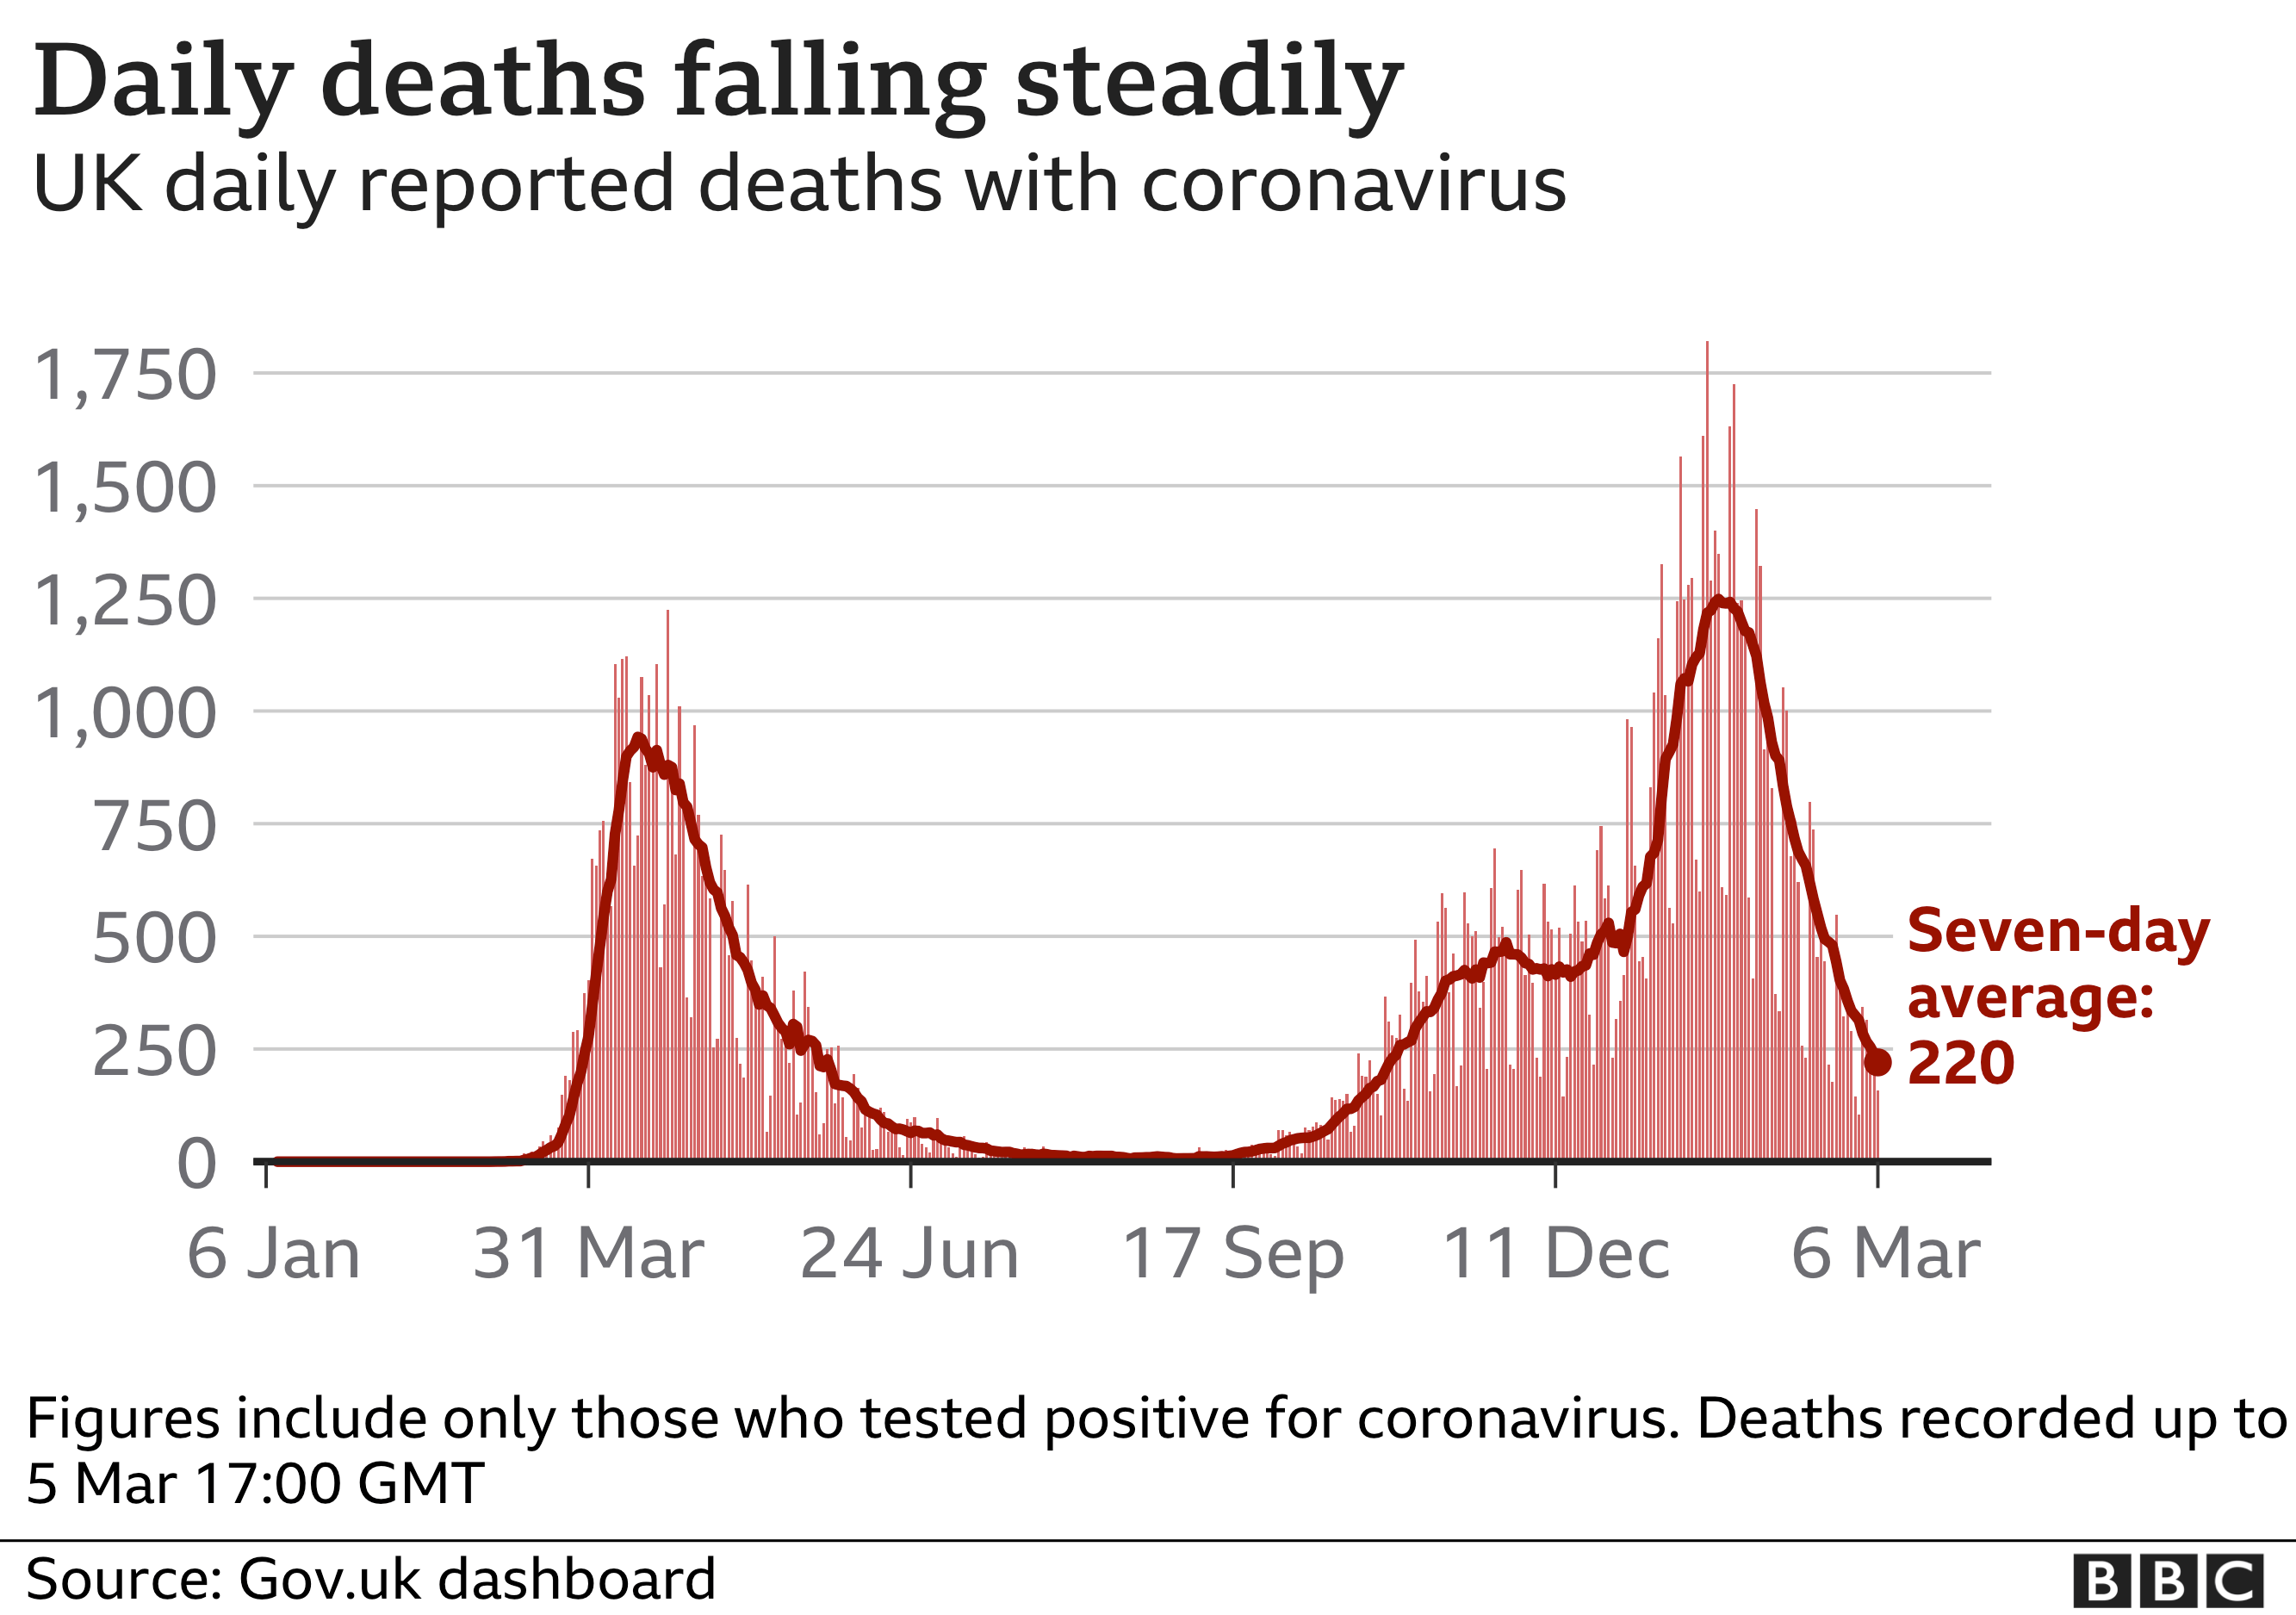 Chart showing daily deaths declining